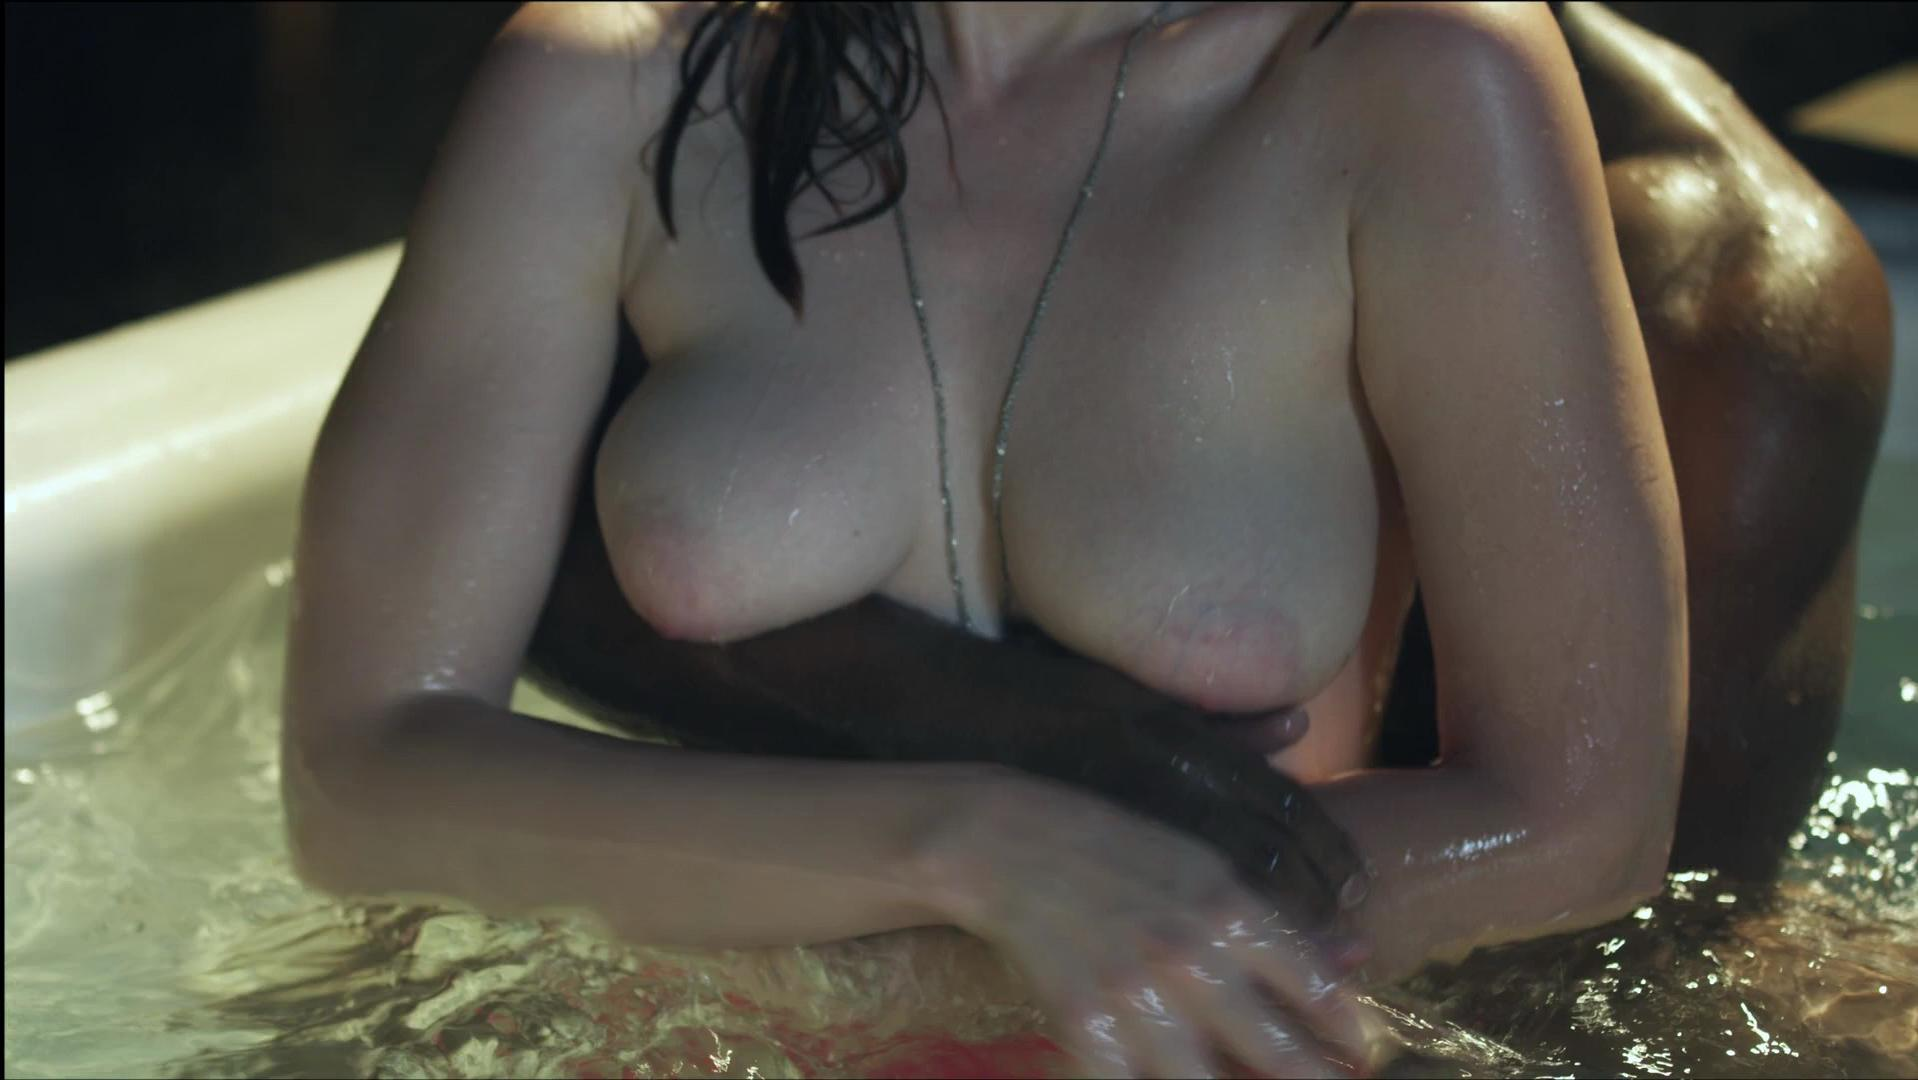 Kat Sheridan nude, Kate French sexy, Cristen Coppen sexy - The Red House (2013)